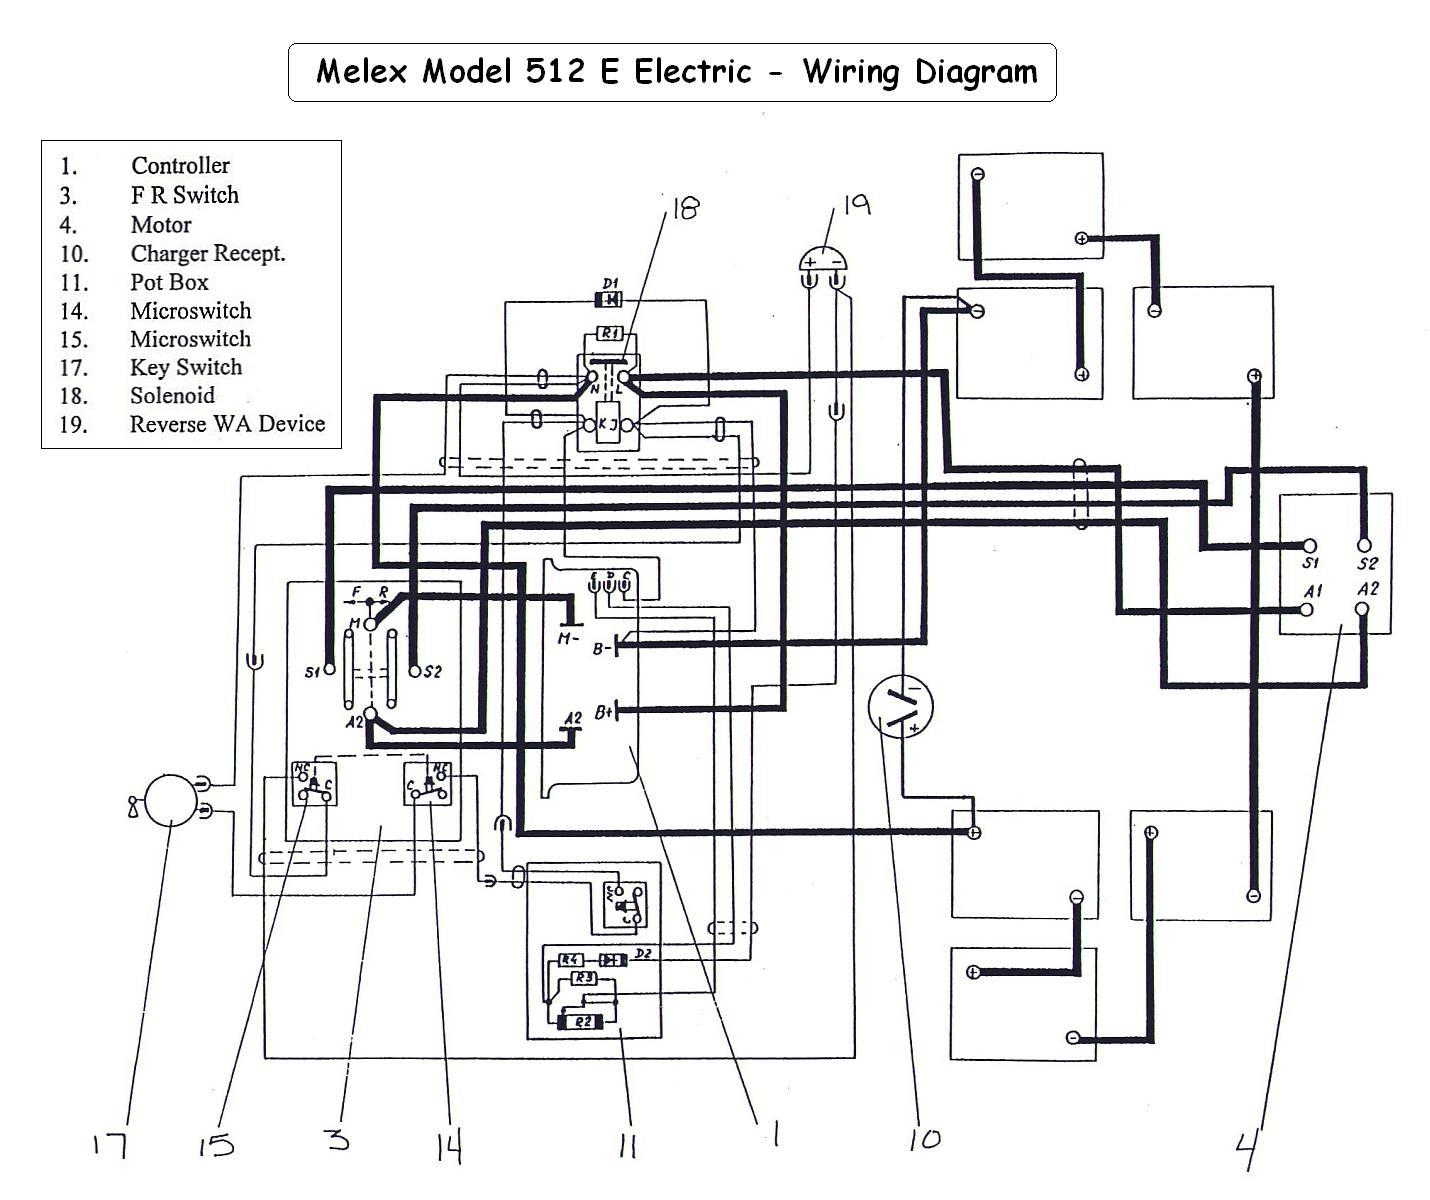 hight resolution of 1989 golf cart 36 volt ezgo wiring diagram wiring diagram third level ezgo pds wiring diagram 89 golf cart 36 volt ezgo wiring diagram